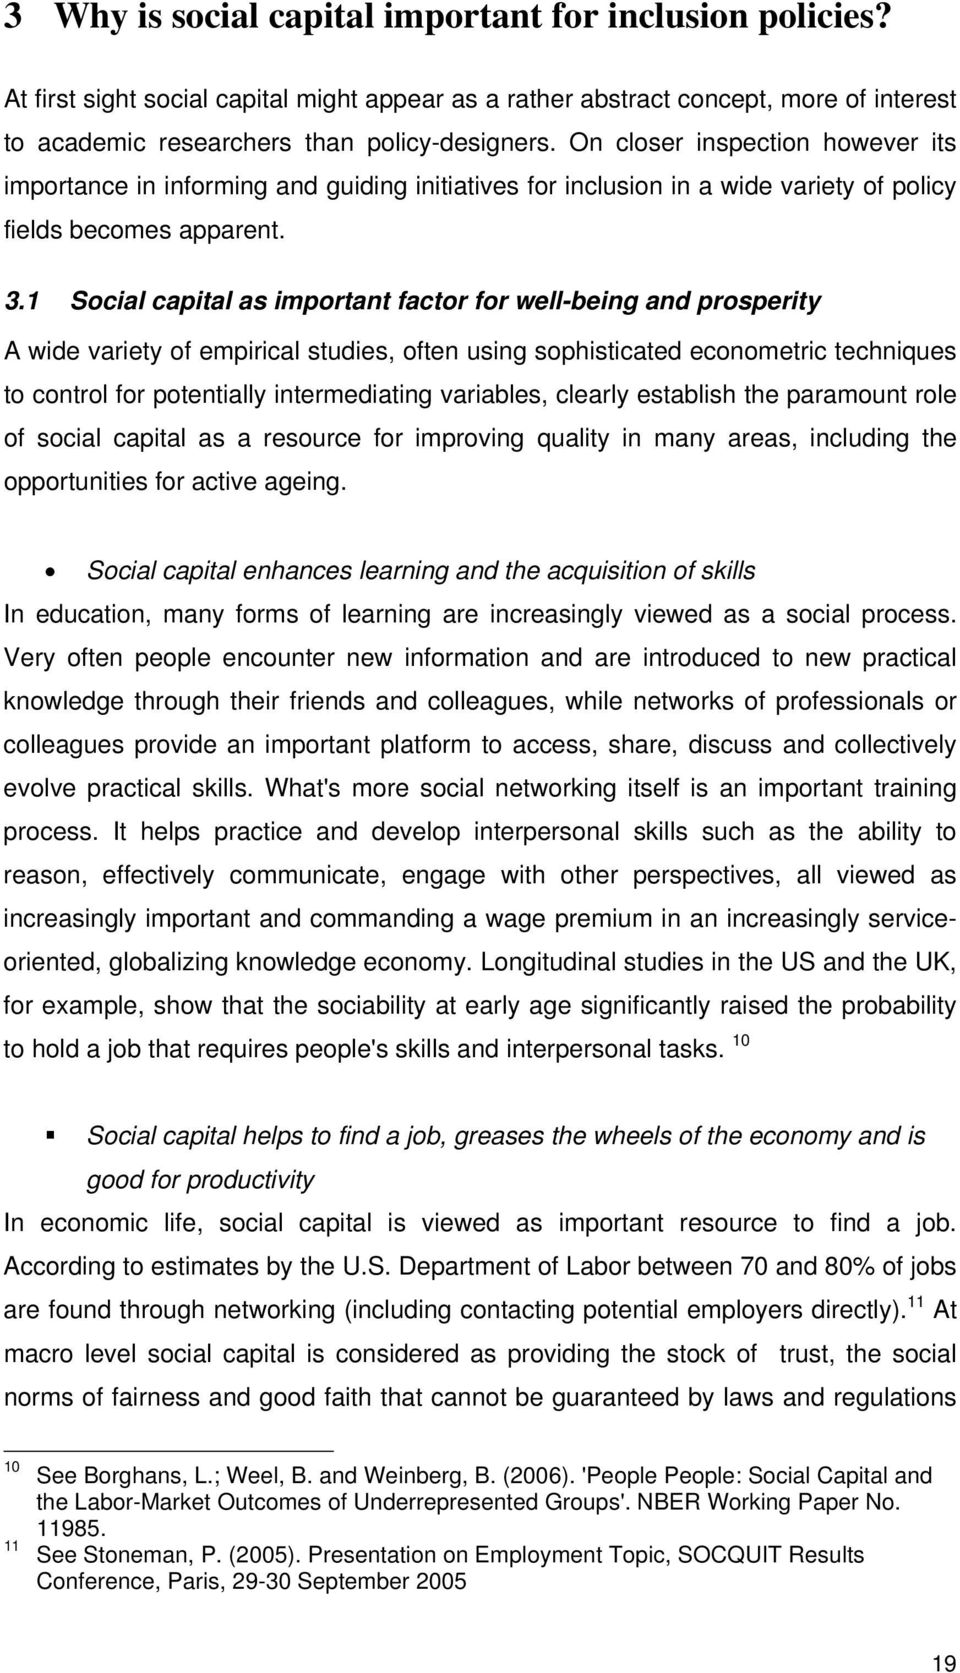 1 Social capital as important factor for well-being and prosperity A wide variety of empirical studies, often using sophisticated econometric techniques to control for potentially intermediating